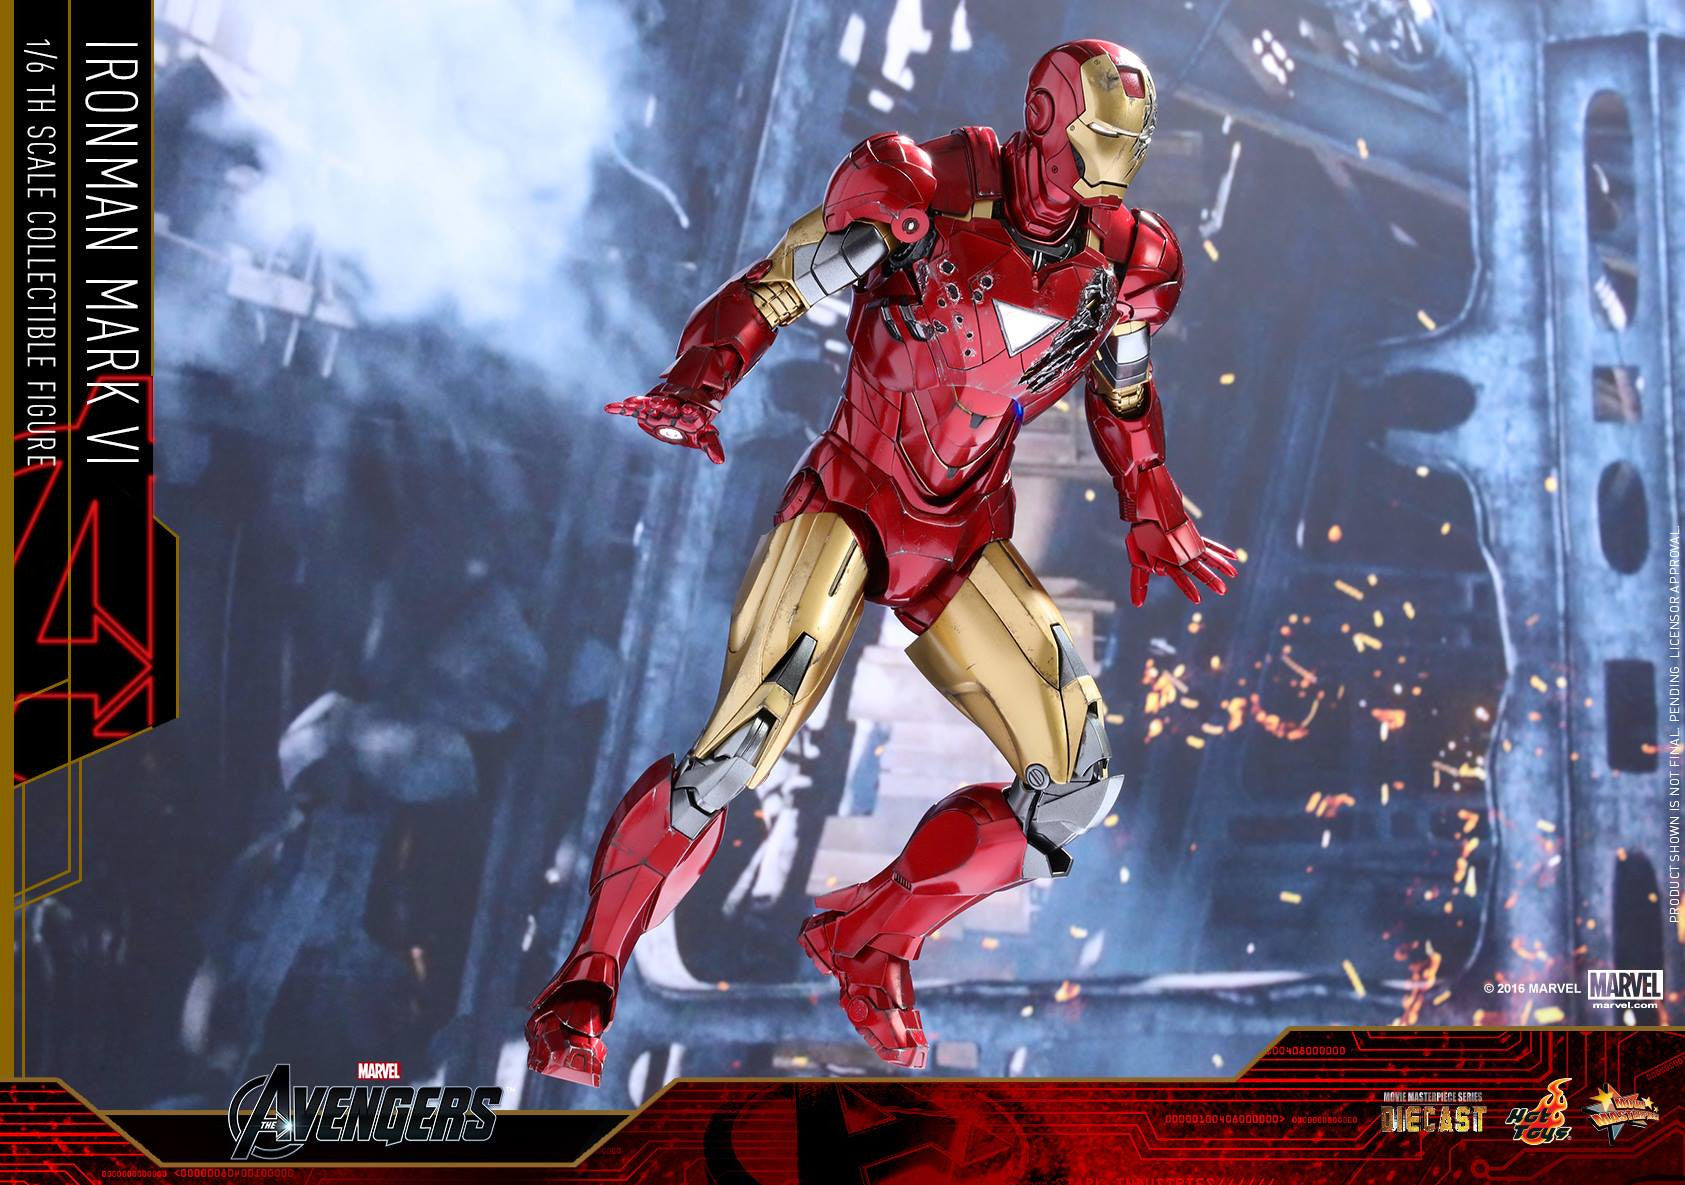 Hot Toys - MMS378D17 - The Avengers - Iron Man Mark VI (DIECAST) (Normal Edition) - Marvelous Toys - 17